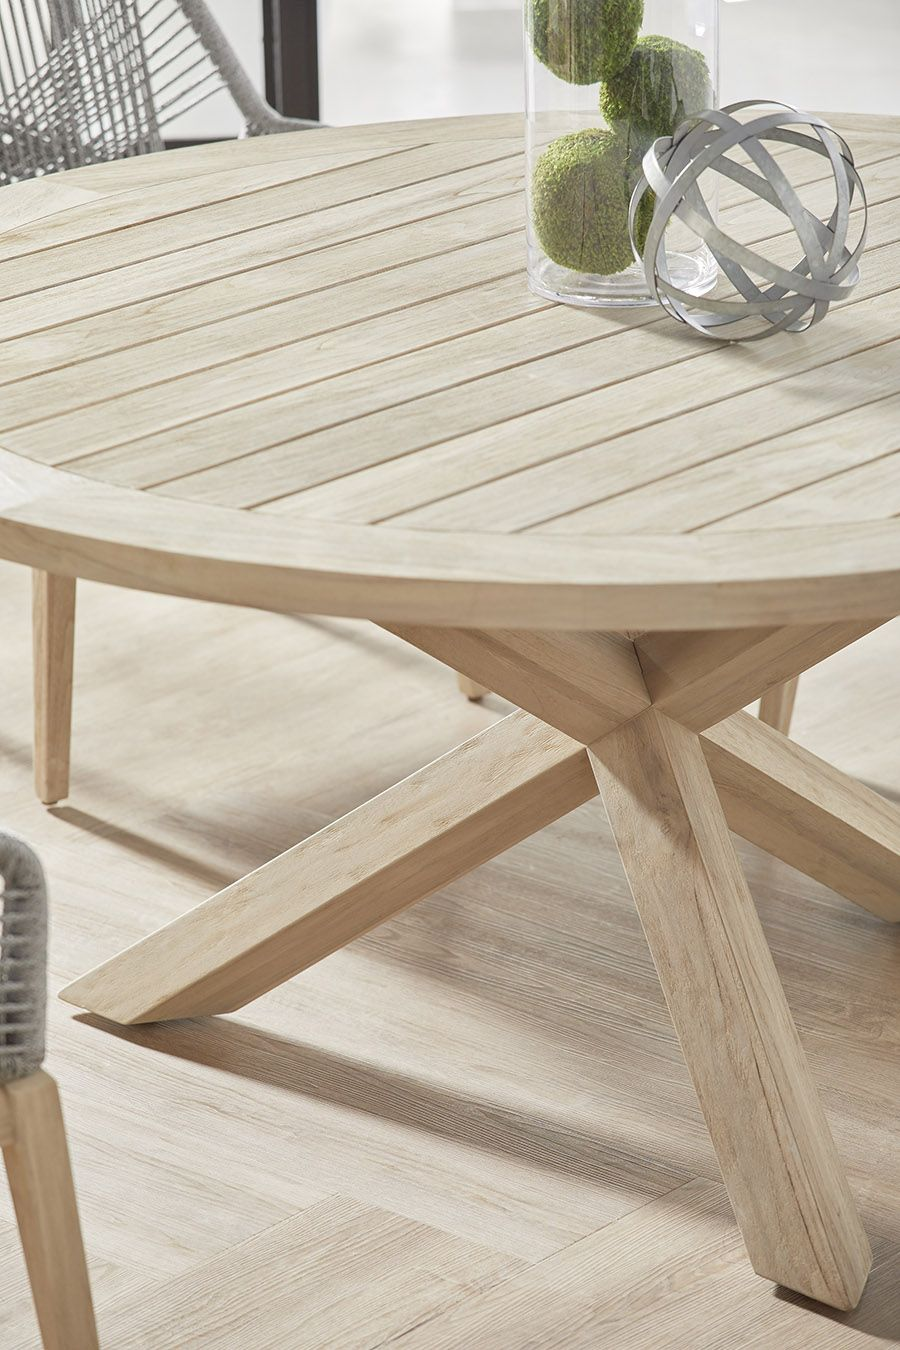 Sumatra Round Outdoor Dining Table Shop Dining Furniture In 2020